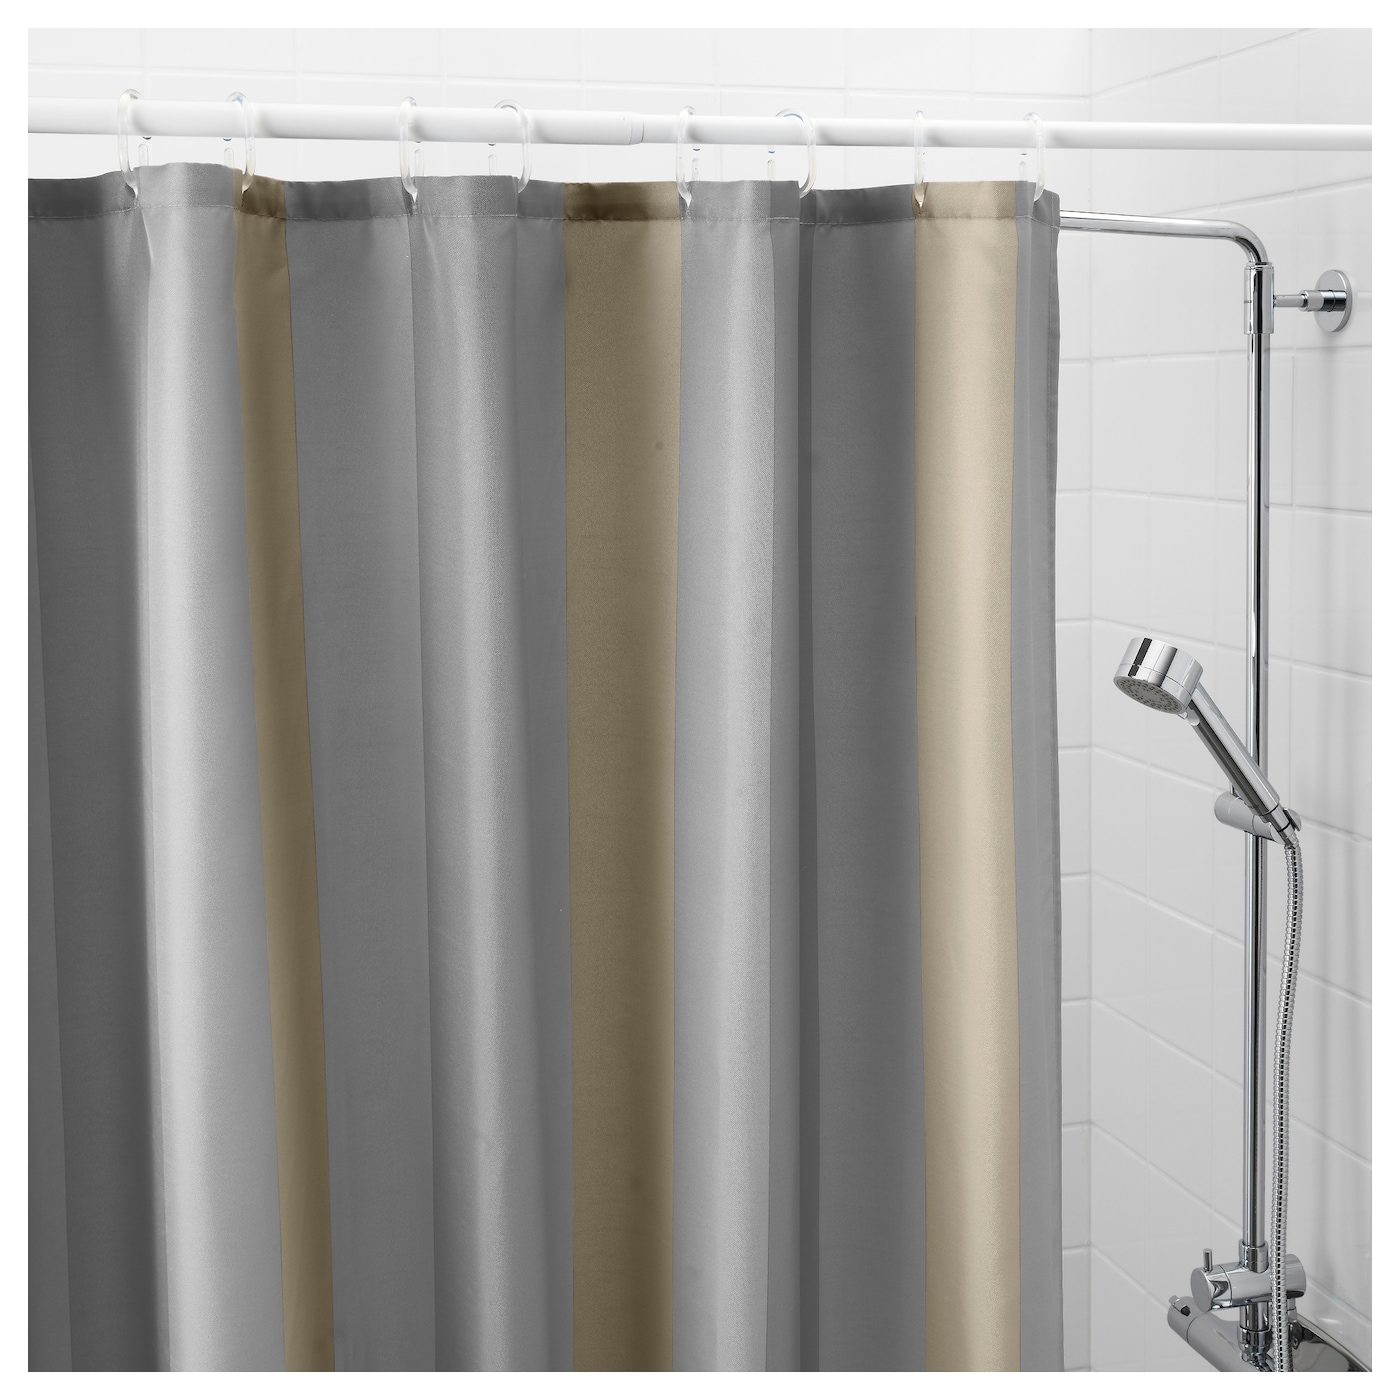 l departments shower curtains b lewis star bq mm cooke prd white curtain drawa at silver diy q stripe